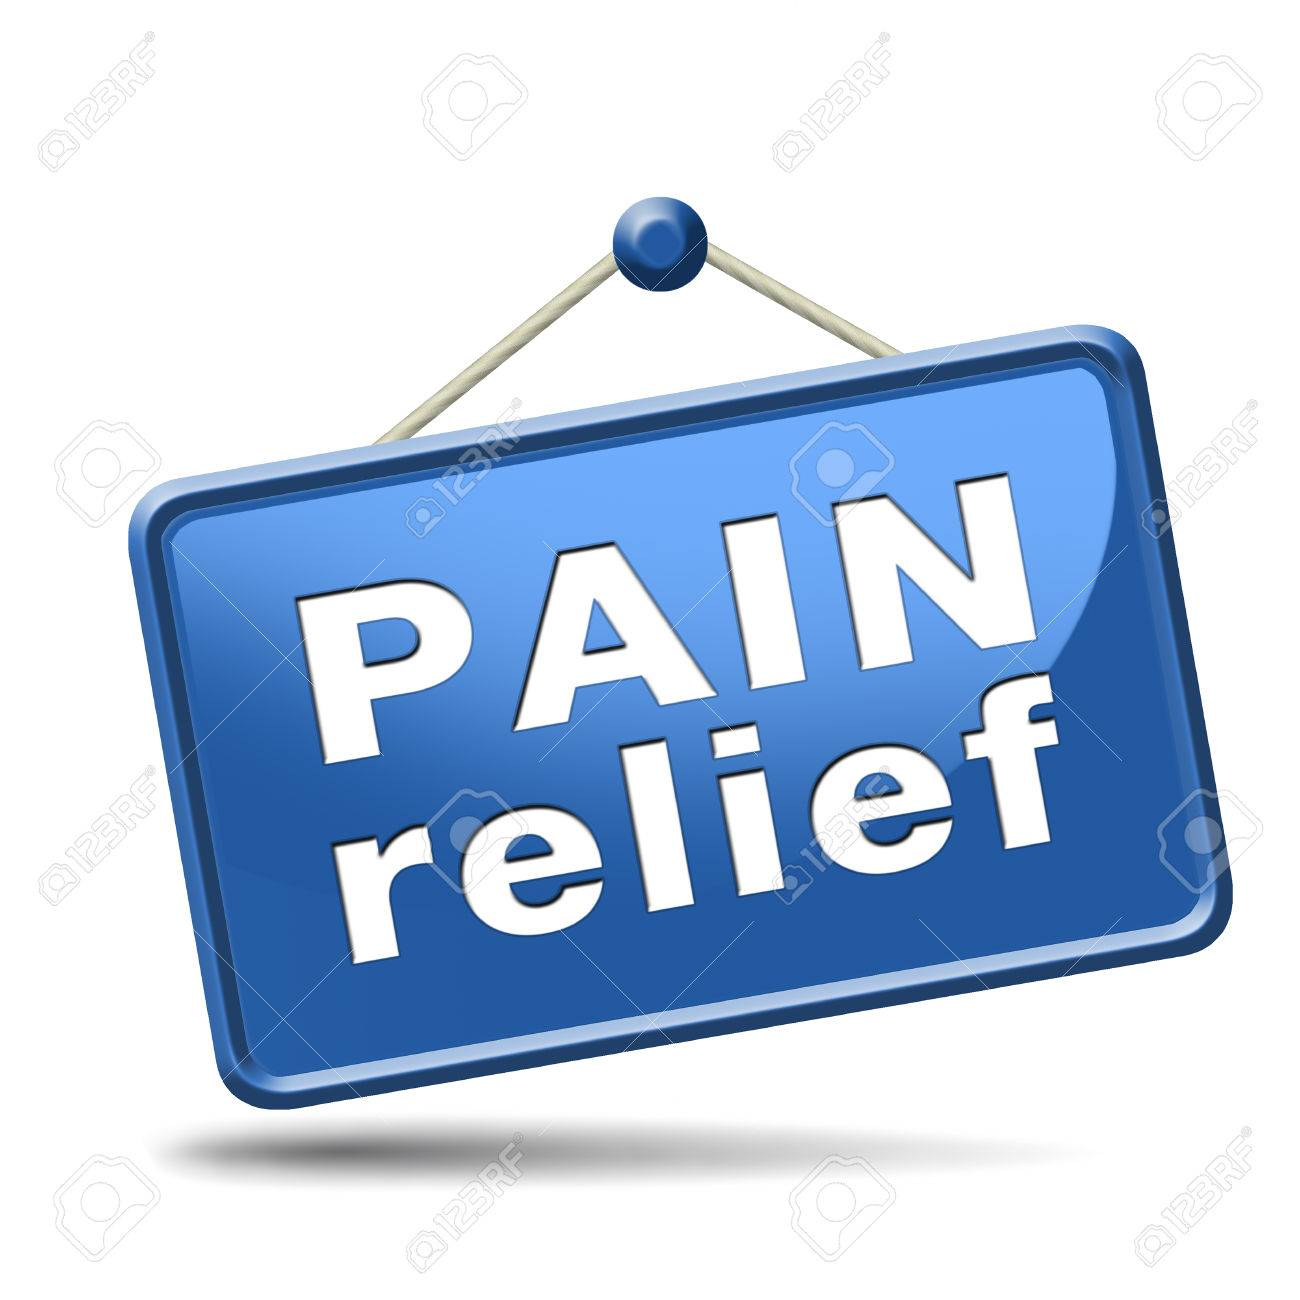 pain relief or management by painkiller or other treatment chronic back injury sign with text - 25263115